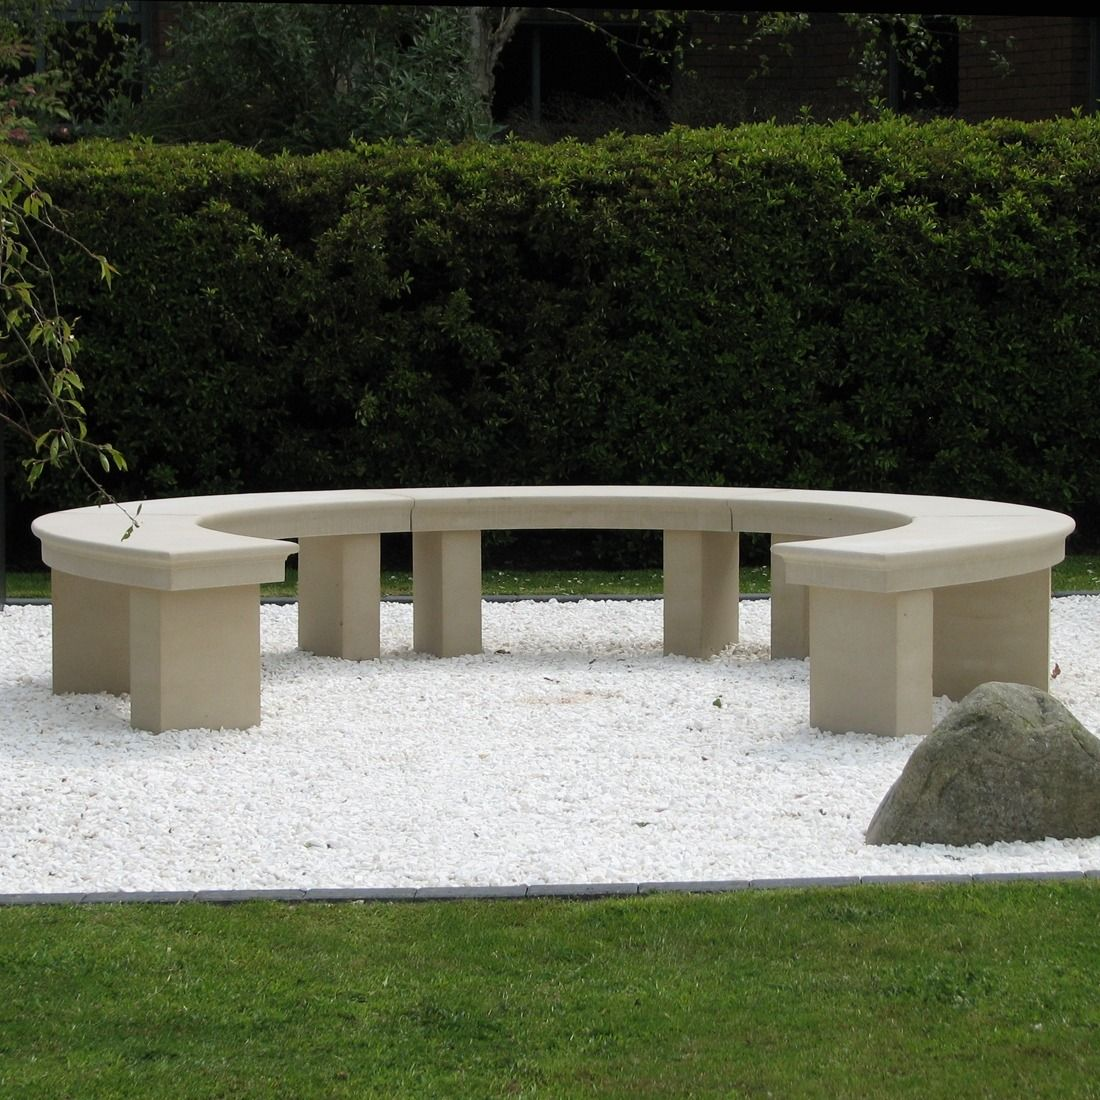 Picture of: Modern Grand Curved Stone Bench Large Garden Benches